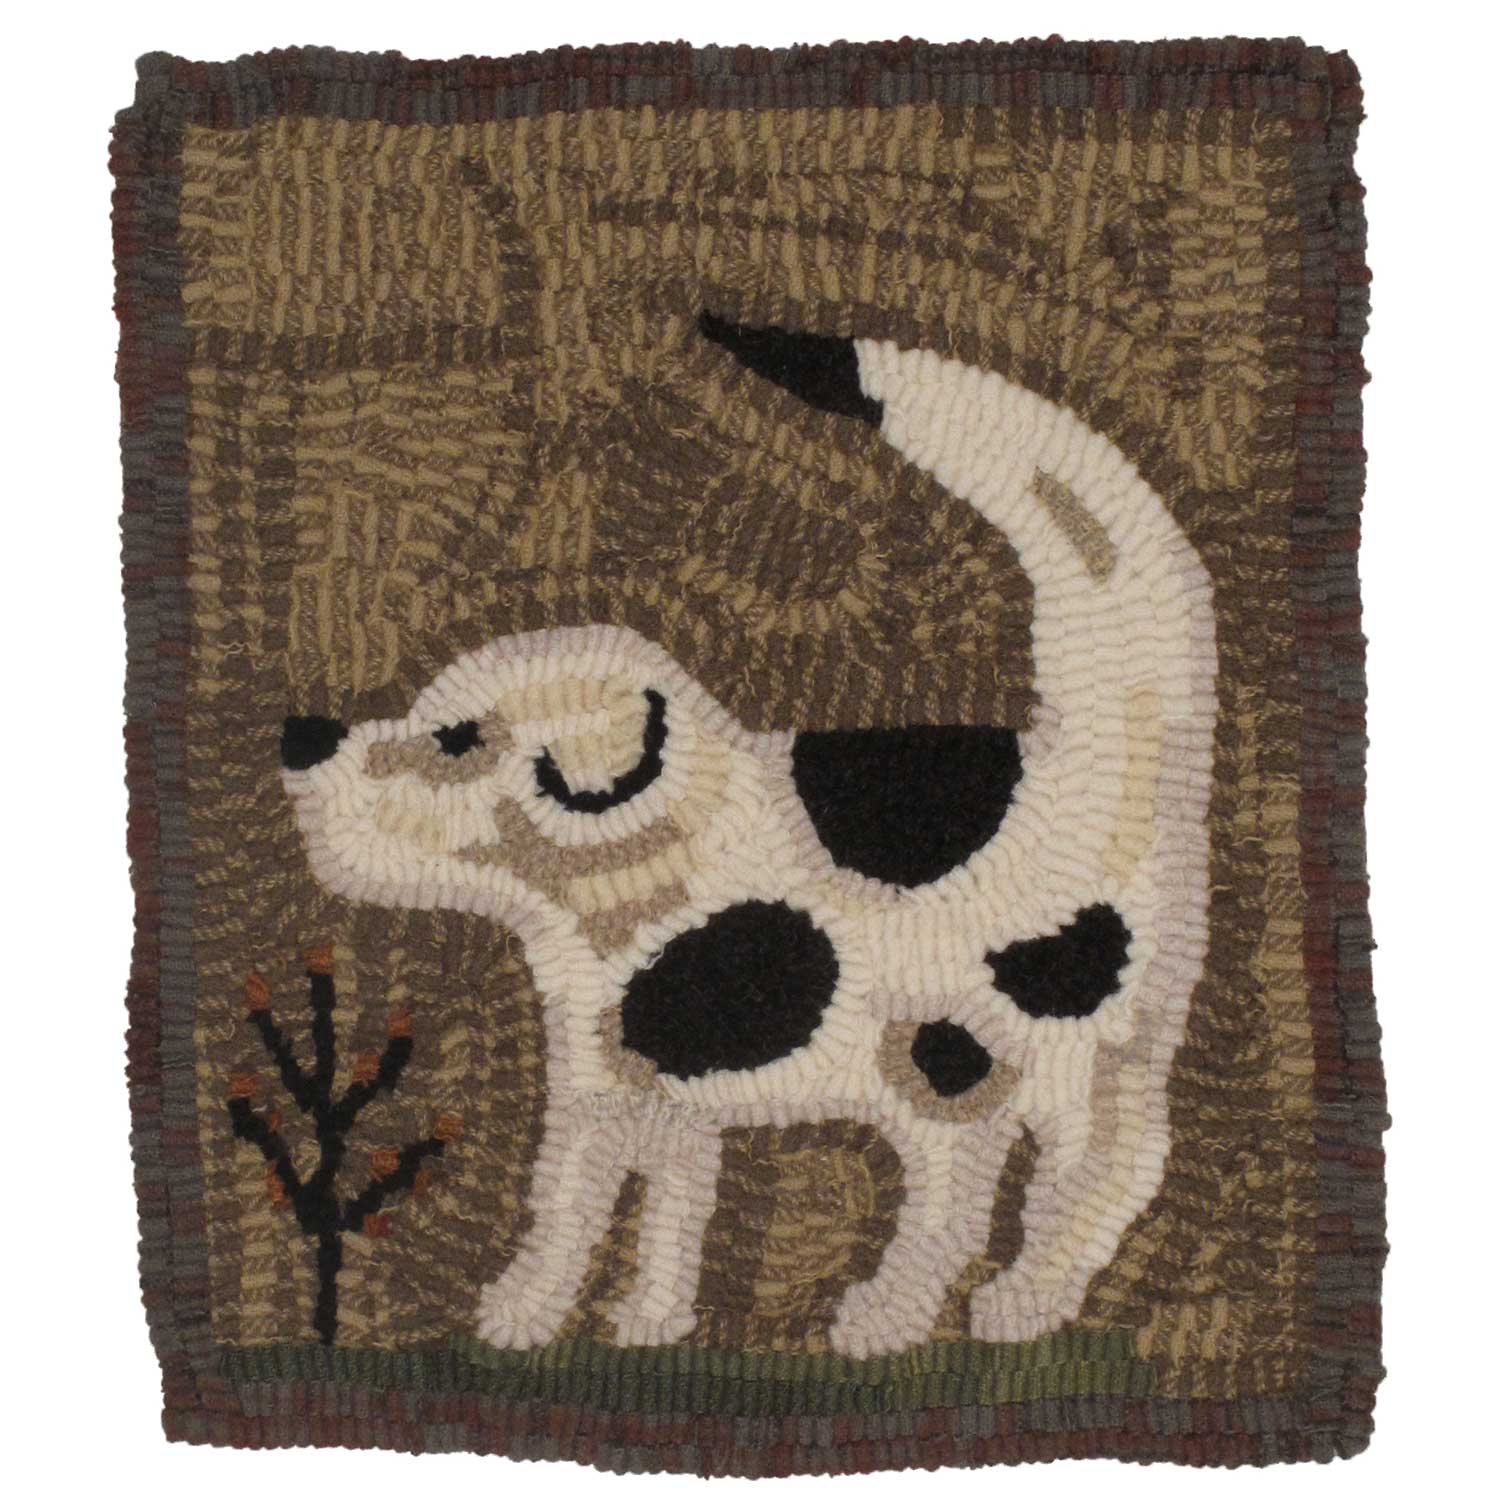 Hooked rug of spotted dog